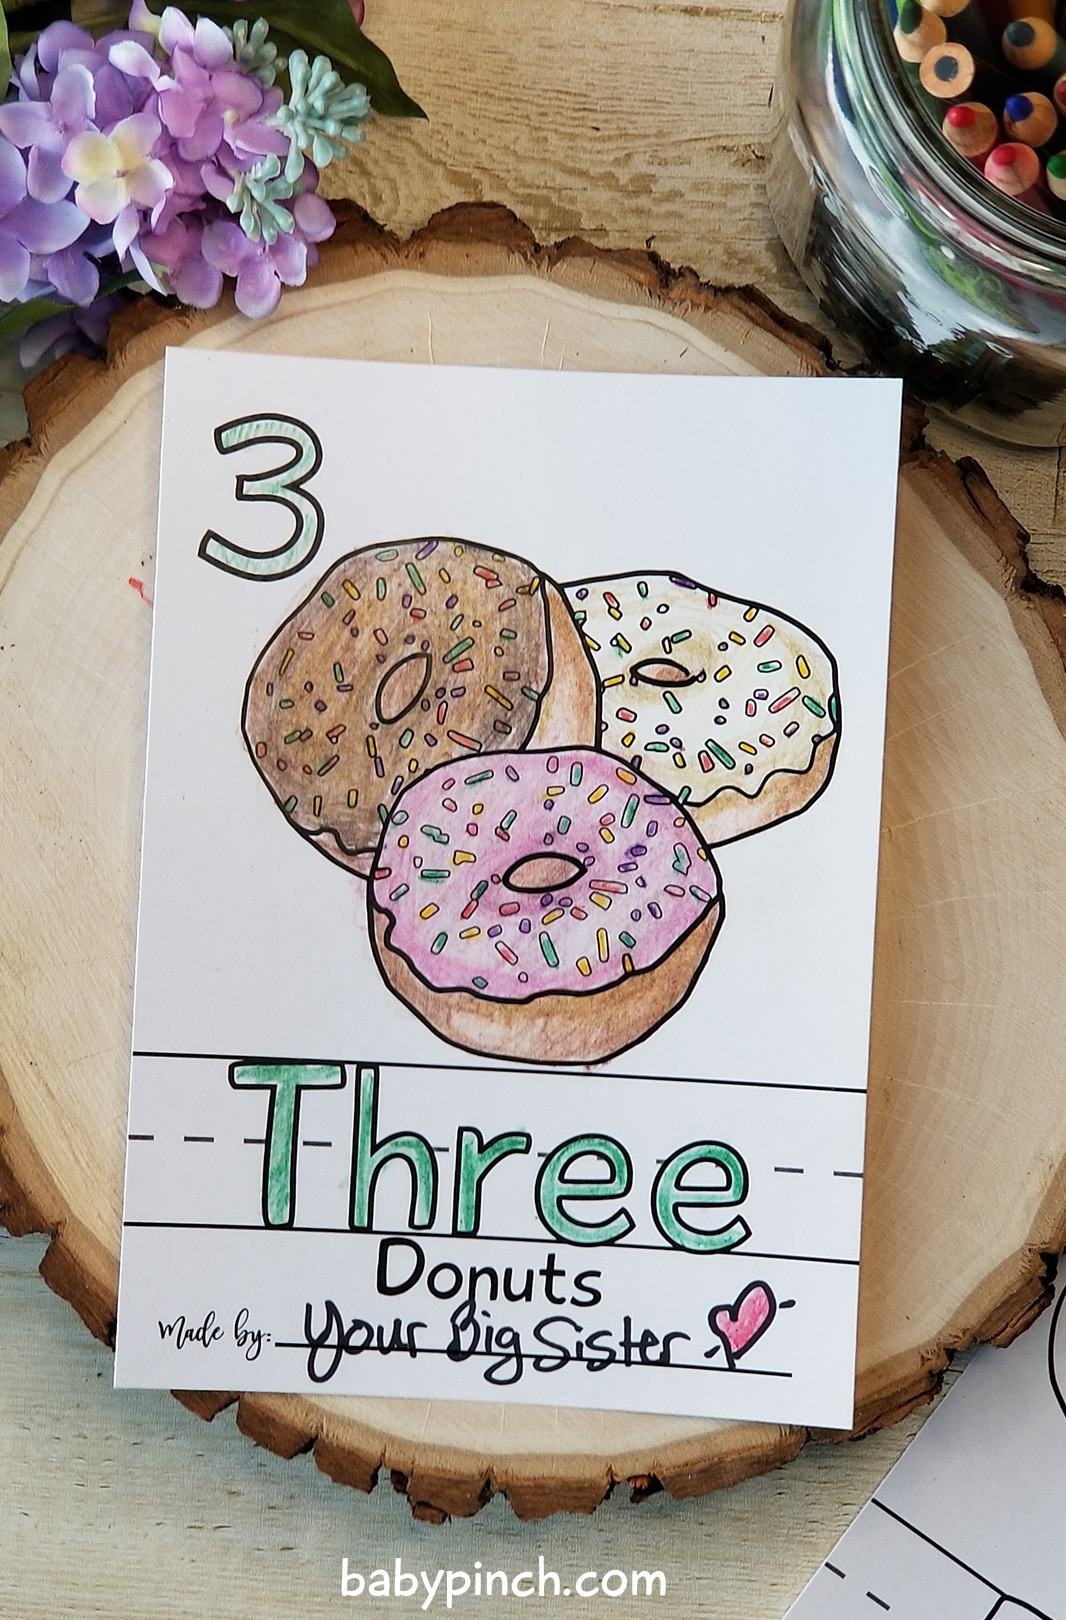 Number 3 page with three donuts